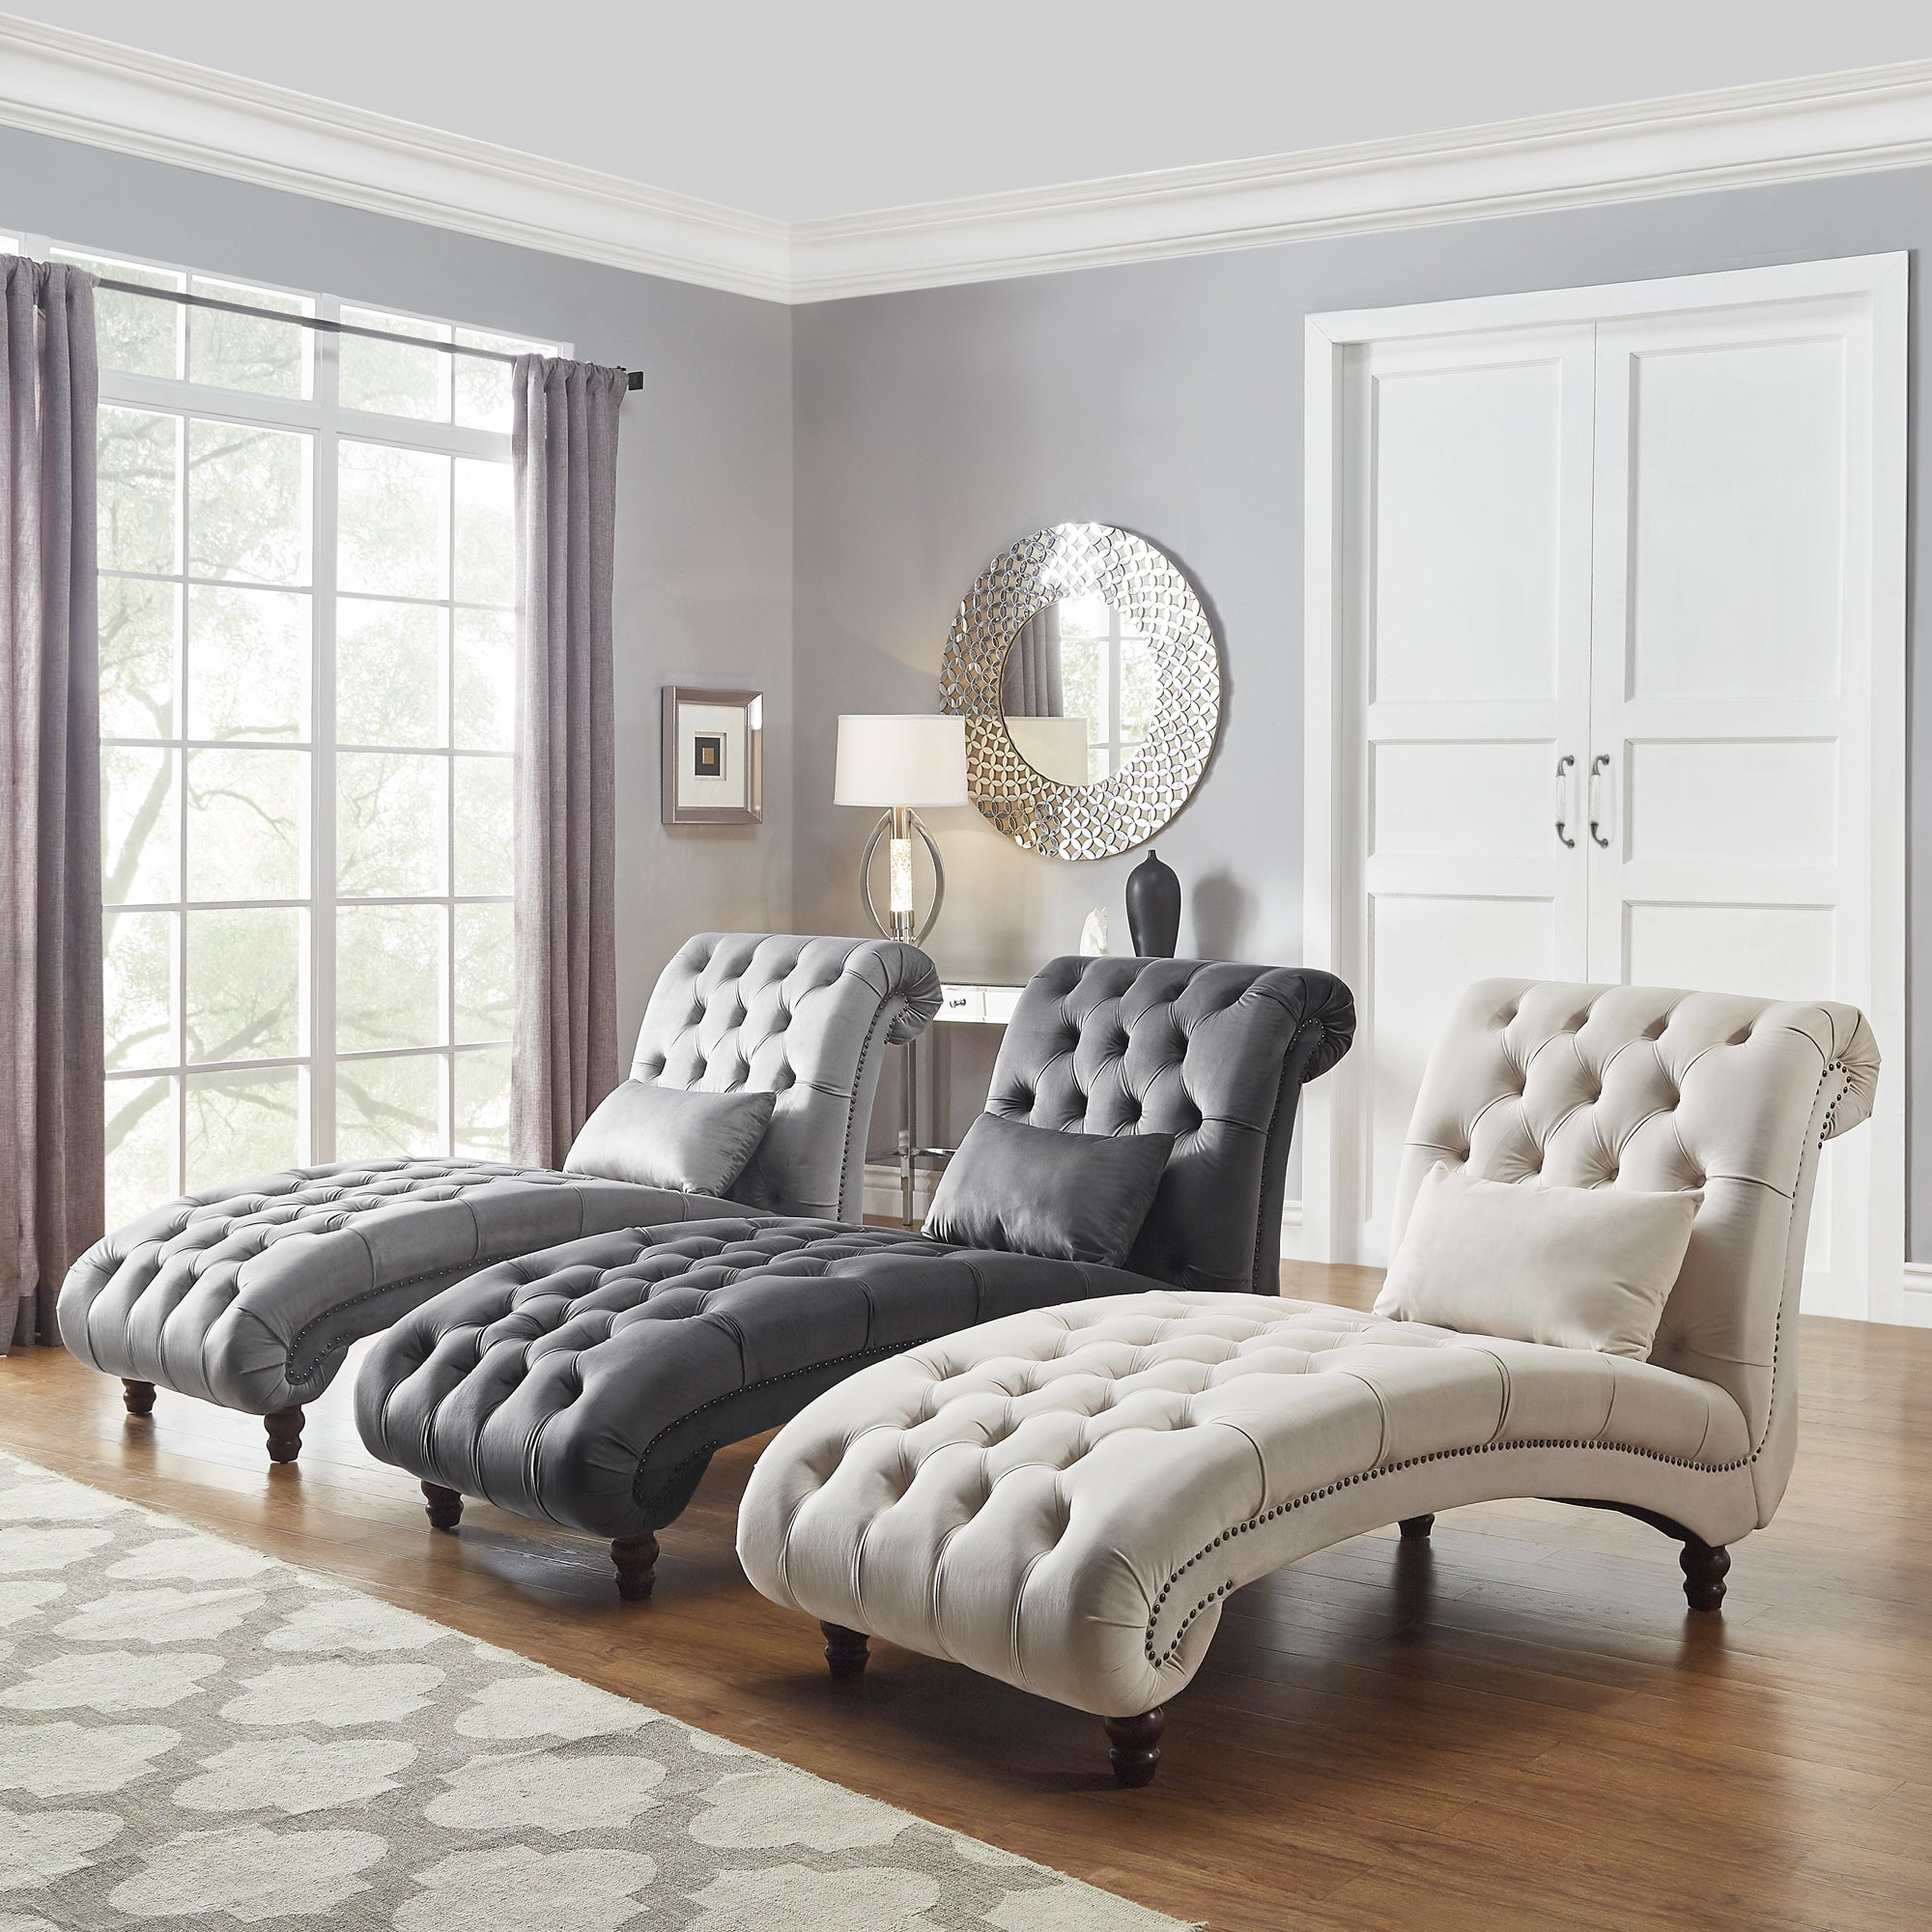 Knightsbridge Tufted Oversized Velvet Chaise Lounge by iNSPIRE Q Artisan -  Free Shipping Today - Overstock.com - 23269452